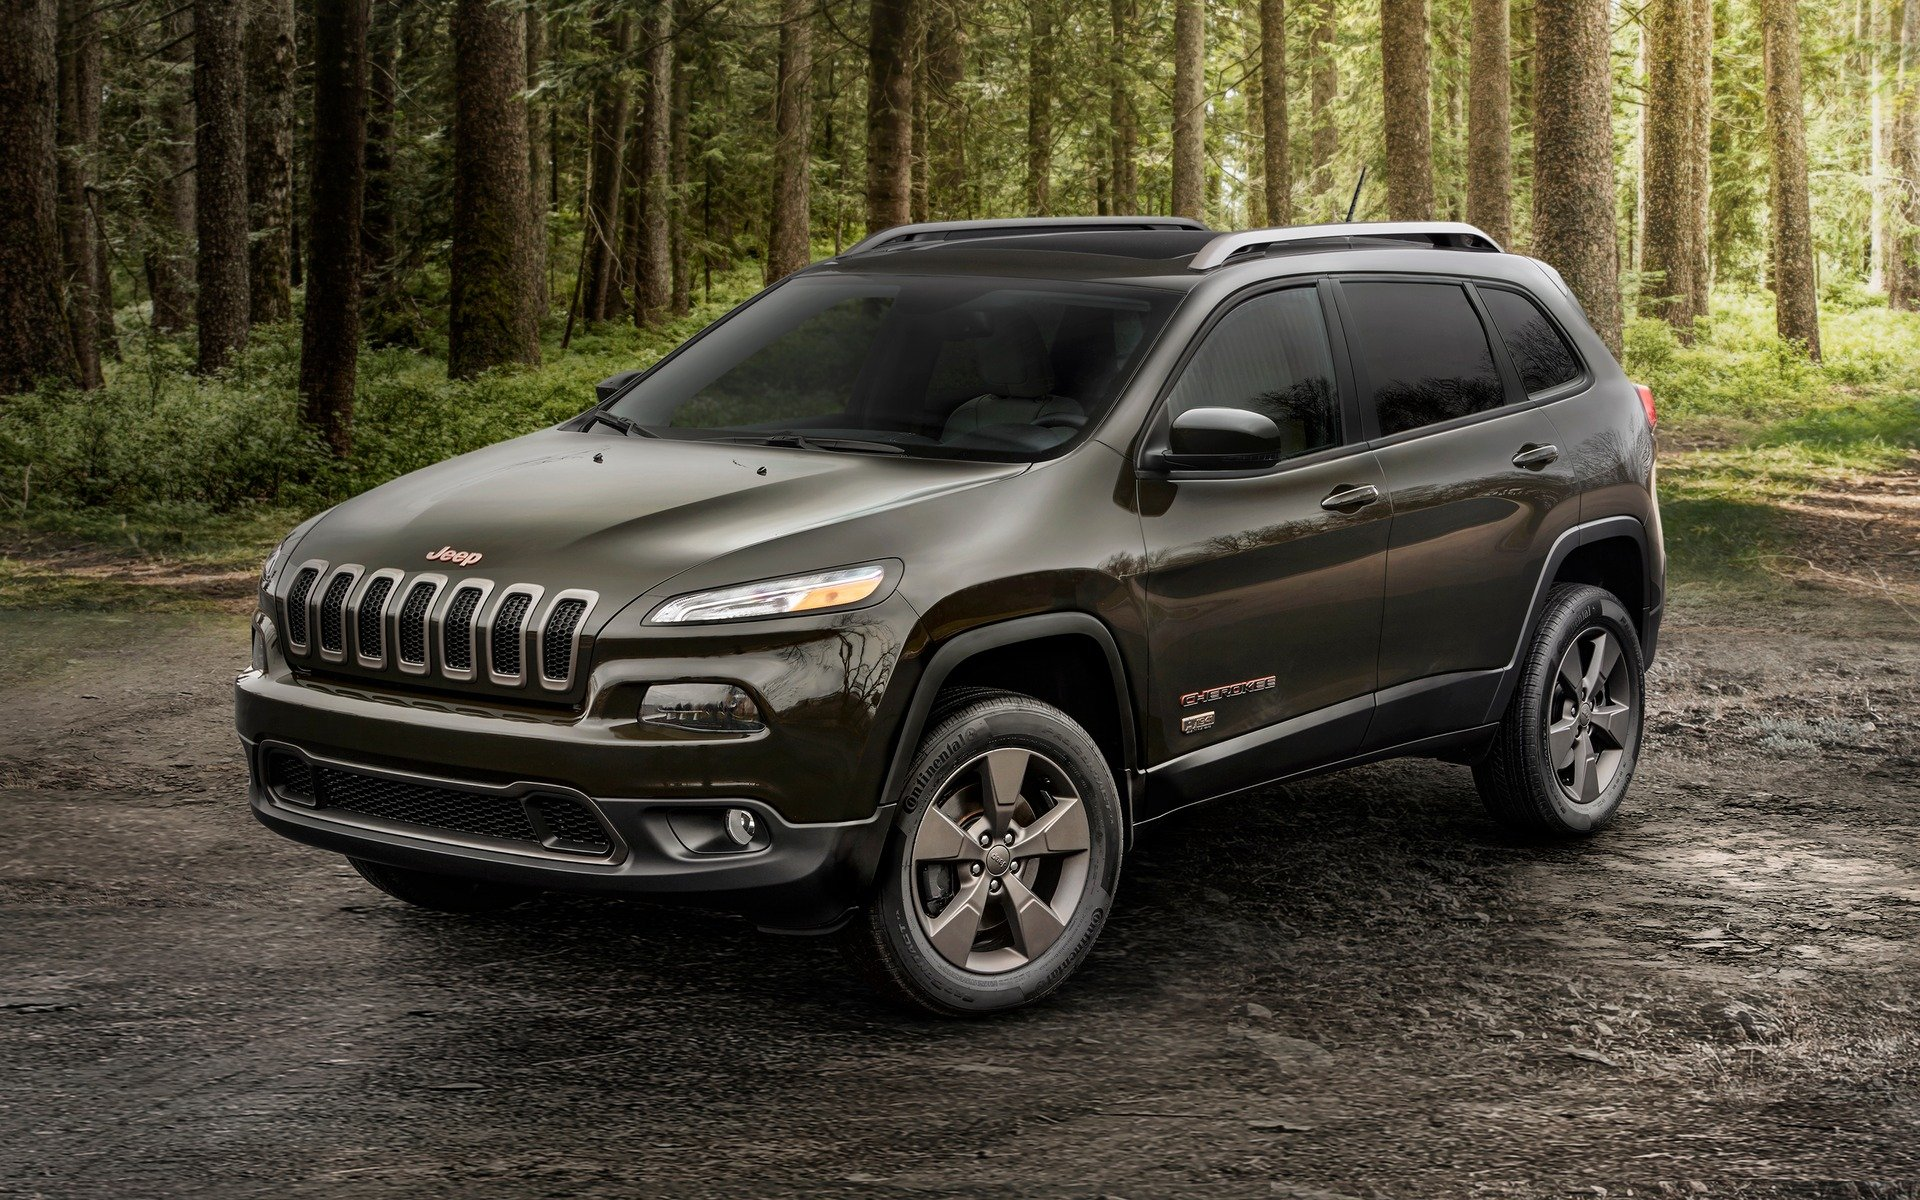 Jeep Cherokee Best-selling SUVs